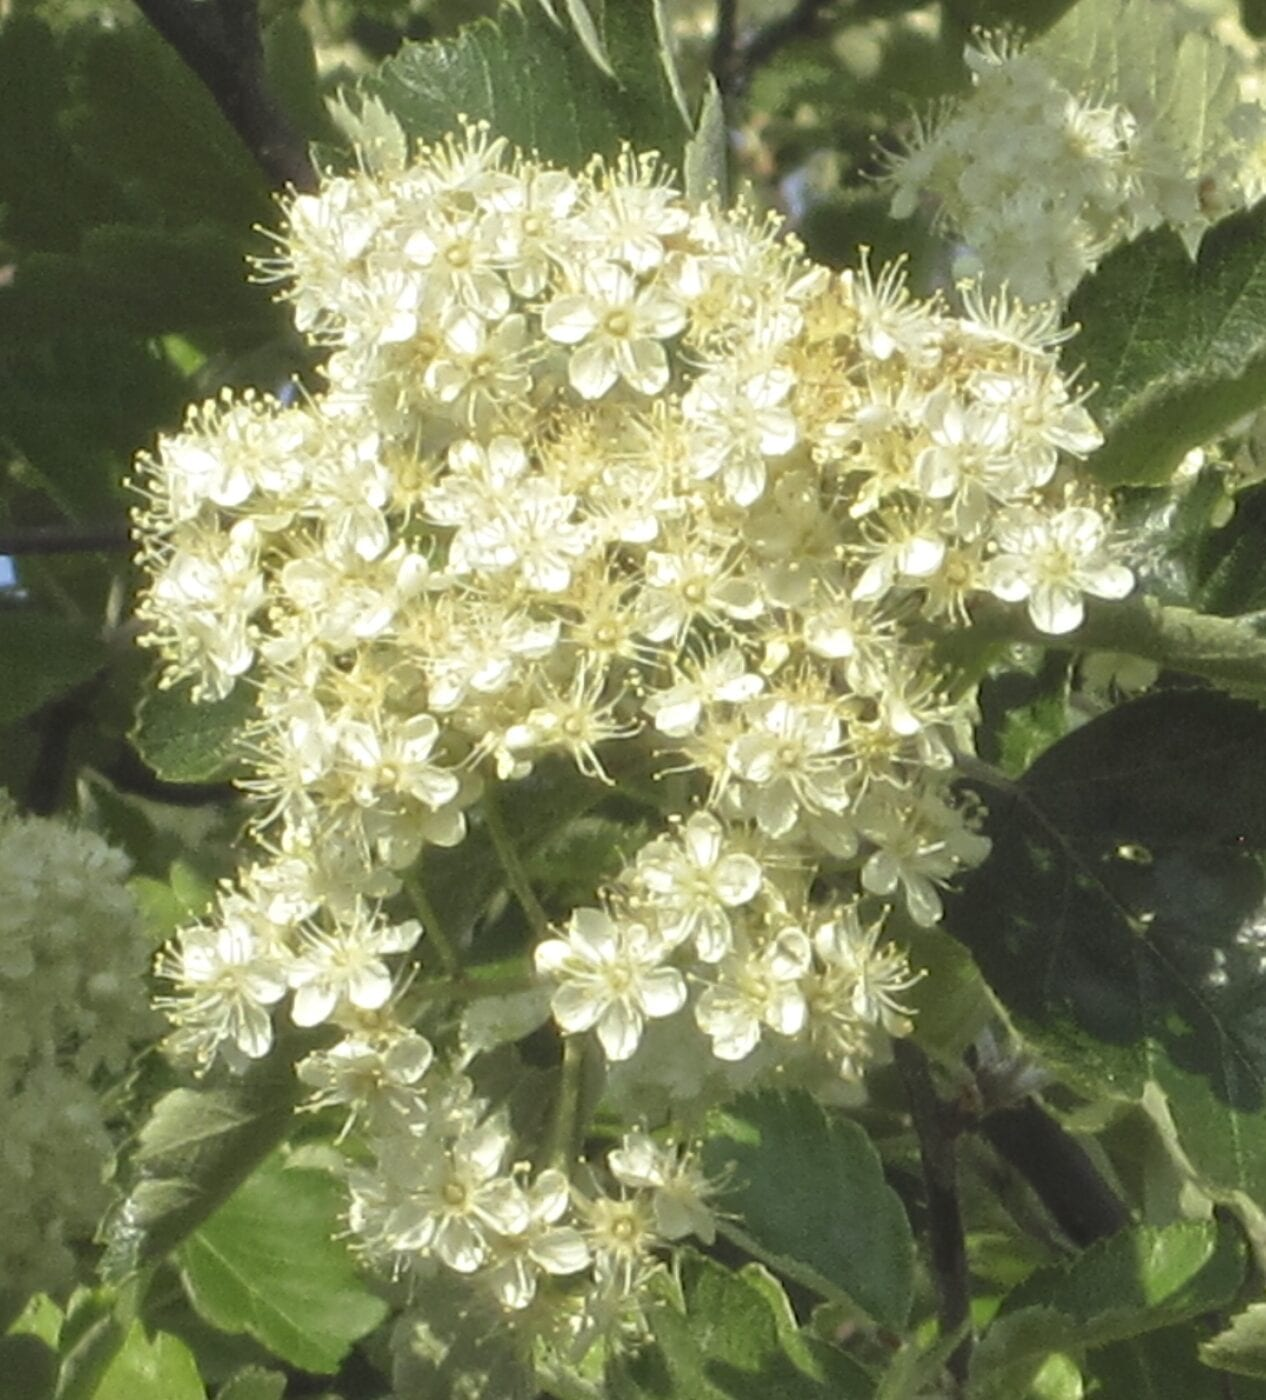 Swedish Whitebeam flowers